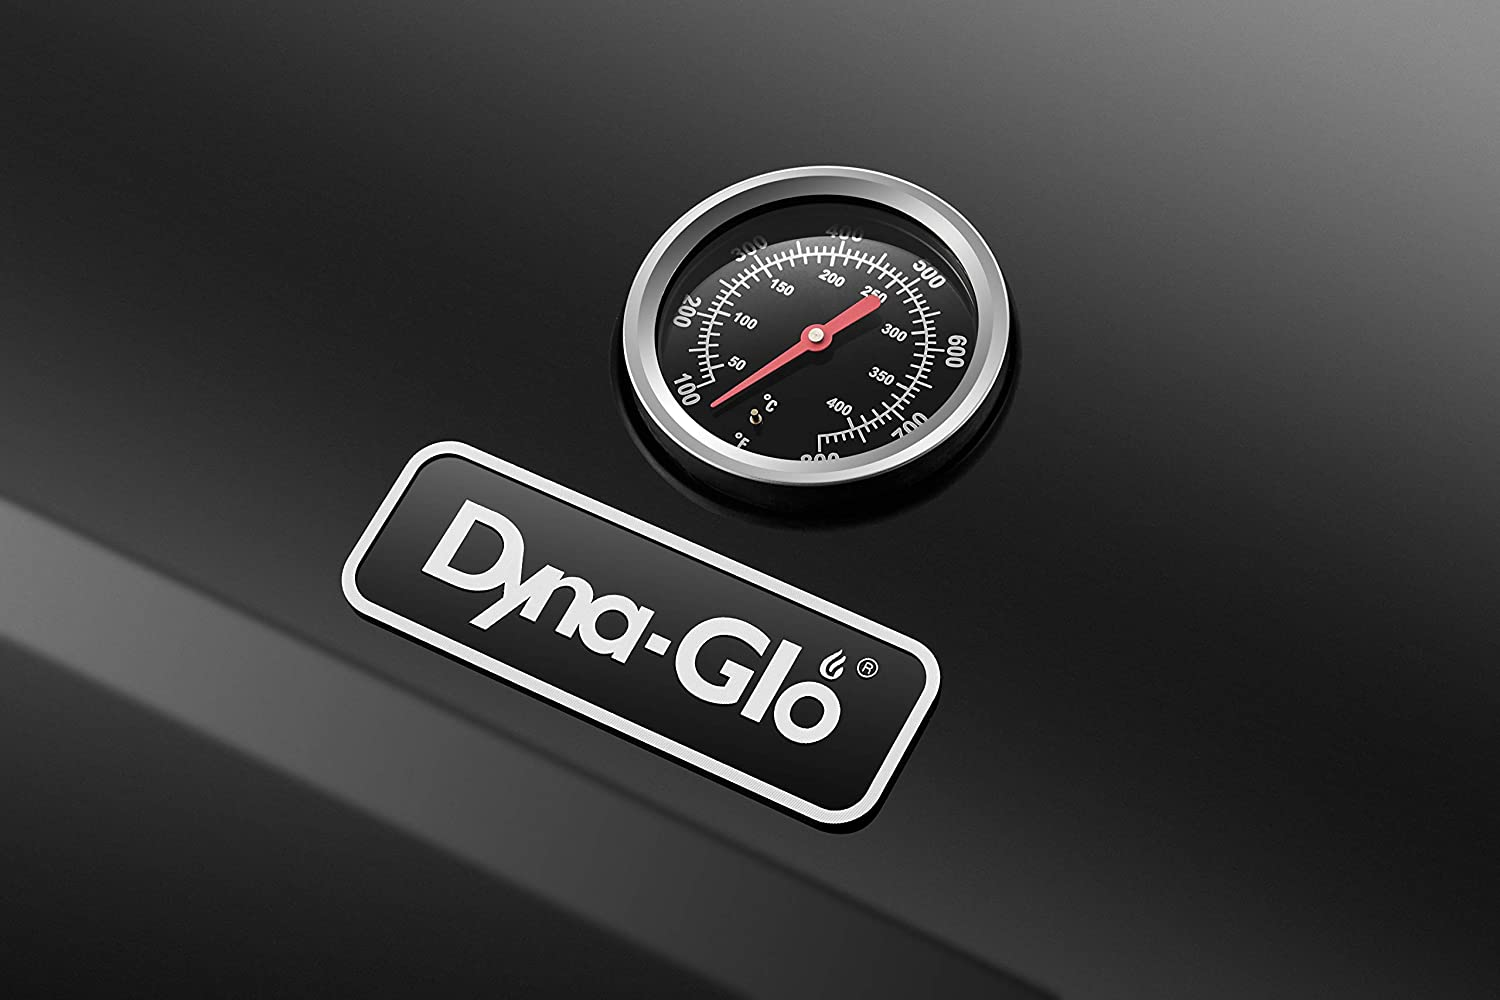 Thermometer on the Dyna-Glo Premier 3 Burner Propane Gas Grill - Black DGP397CNP-D